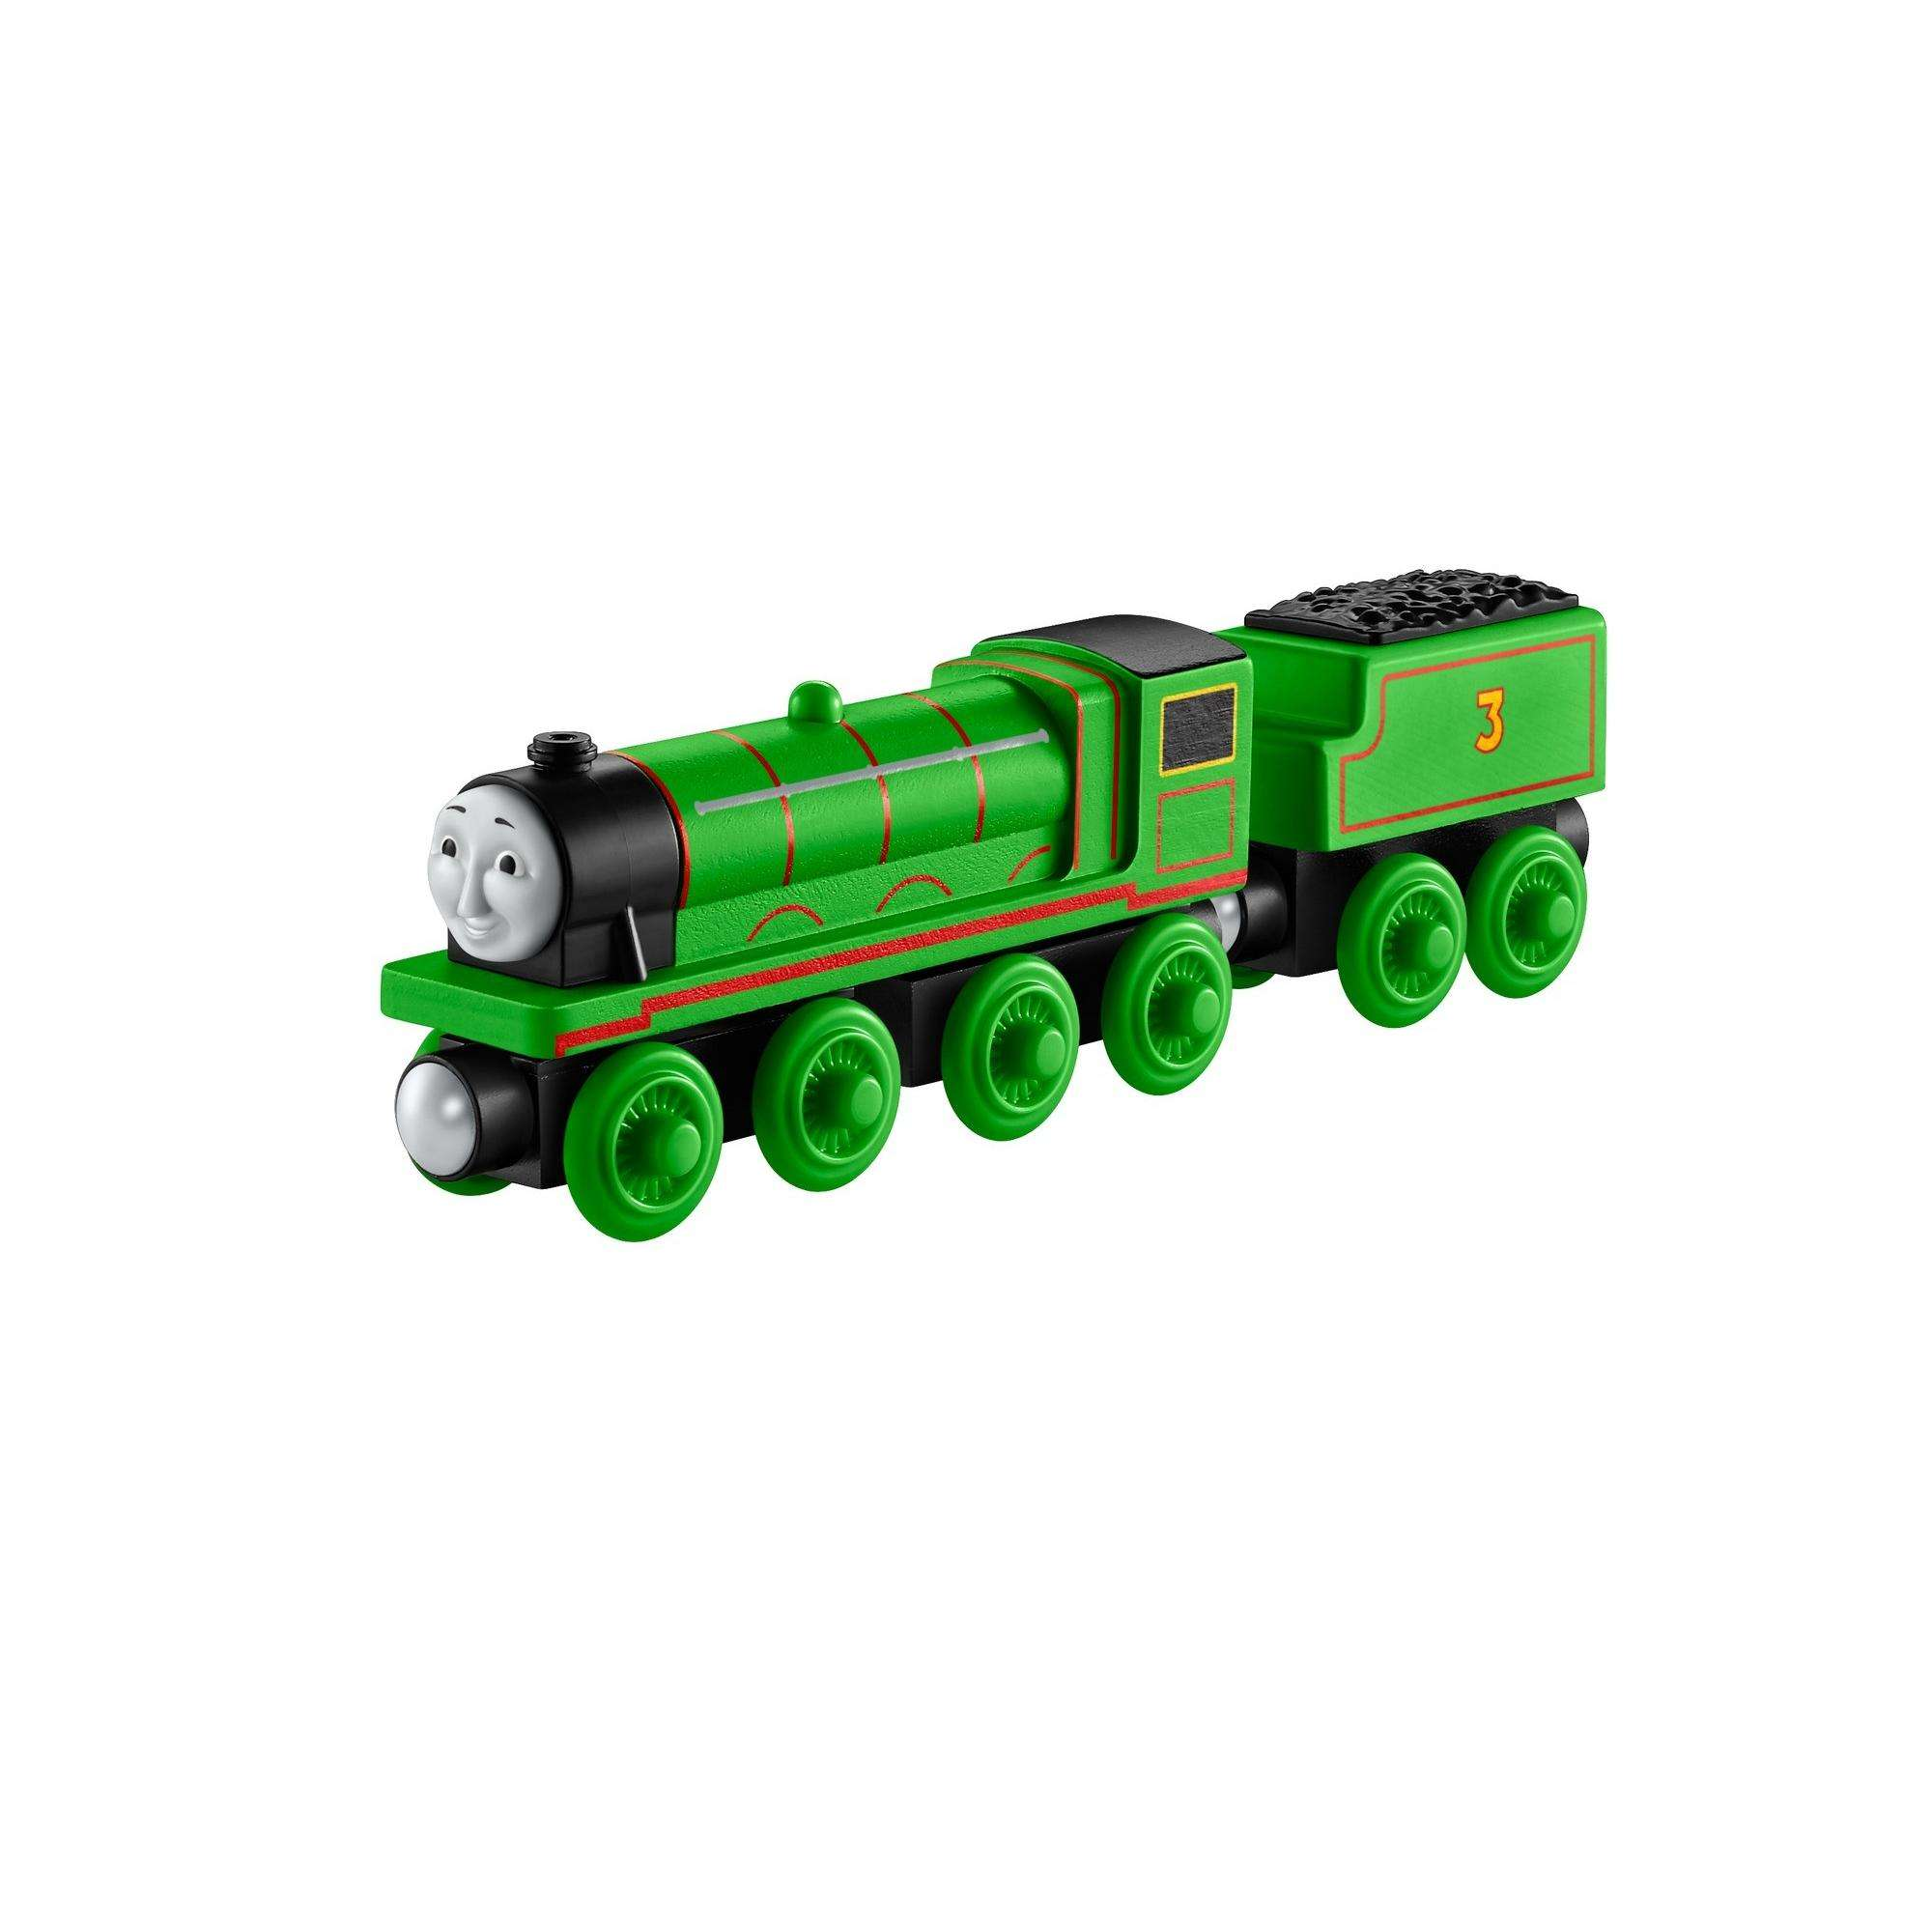 Thomas & Friends Wooden Railway Henry by FISHER PRICE